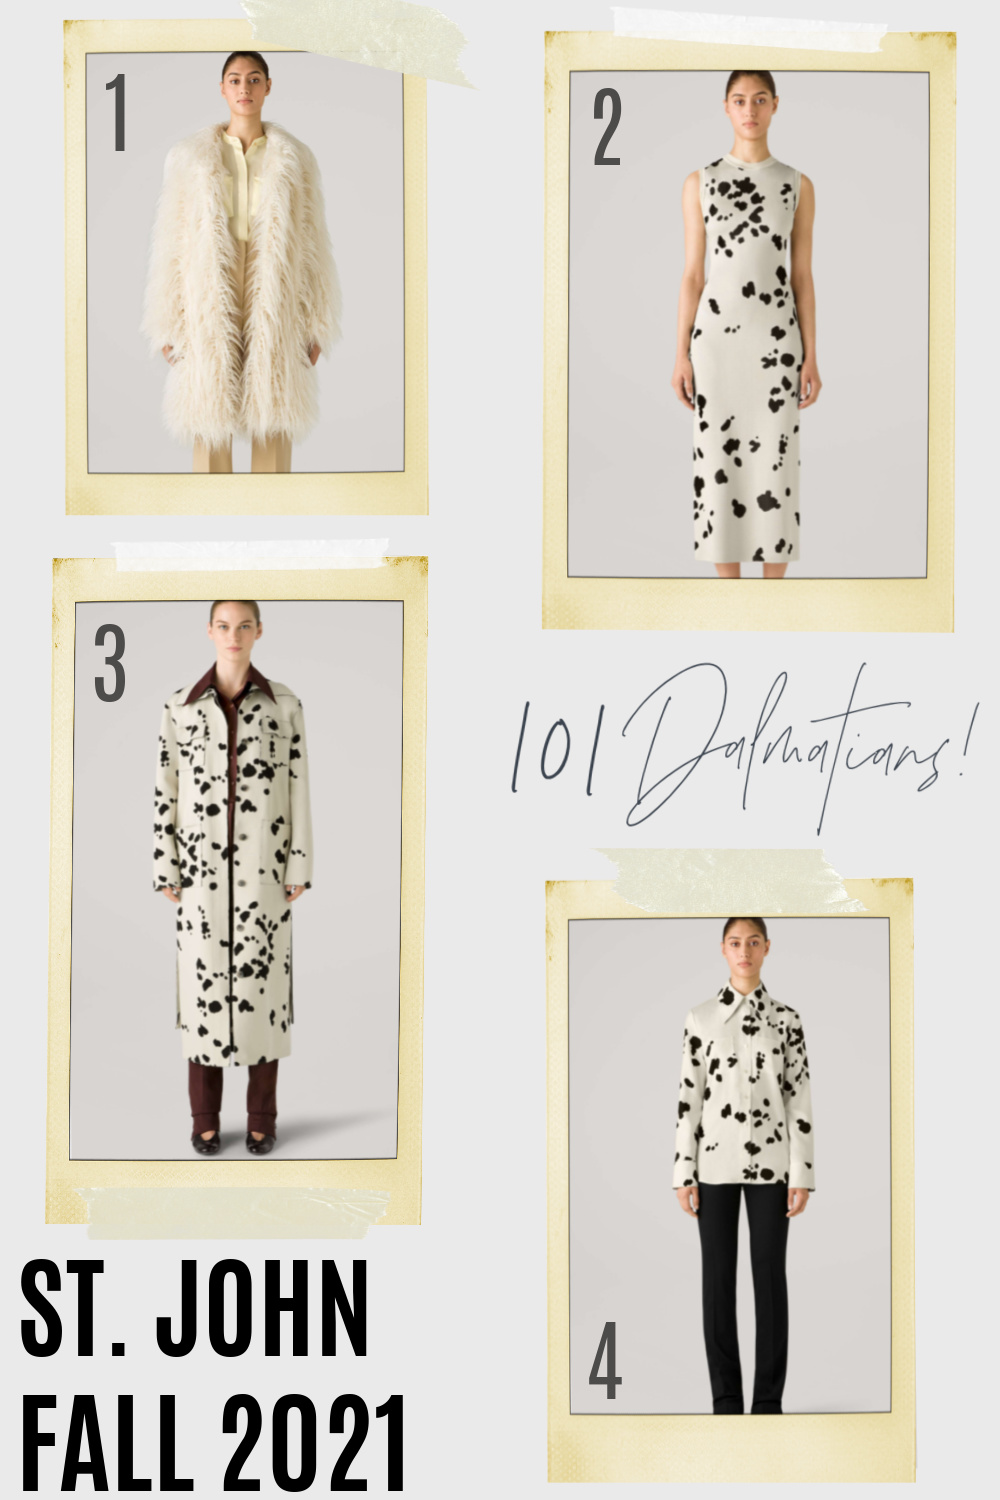 St John Fall 2021 Collection I Dalmatian Print #fashionstyle #fallstyle #ootdstyle